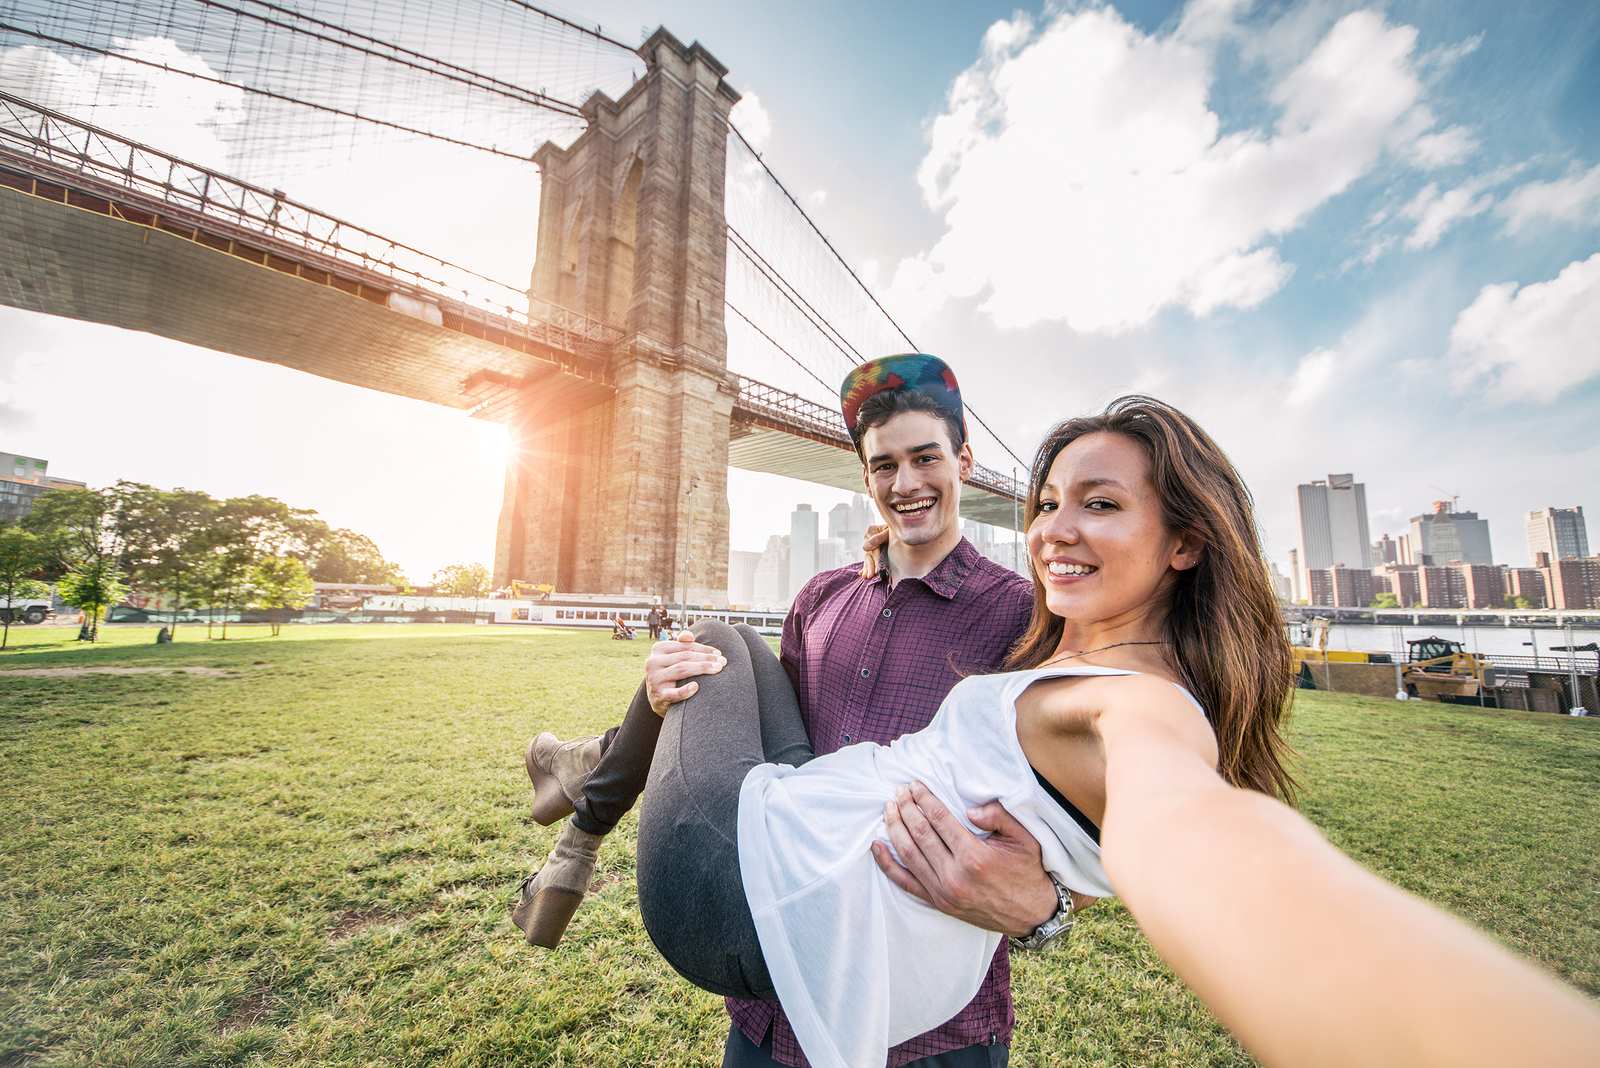 Young pretty couple taking a selfie at Brooklyn Bridge New York - Boyfriend holding his girlfriend and having fun while sightseeing